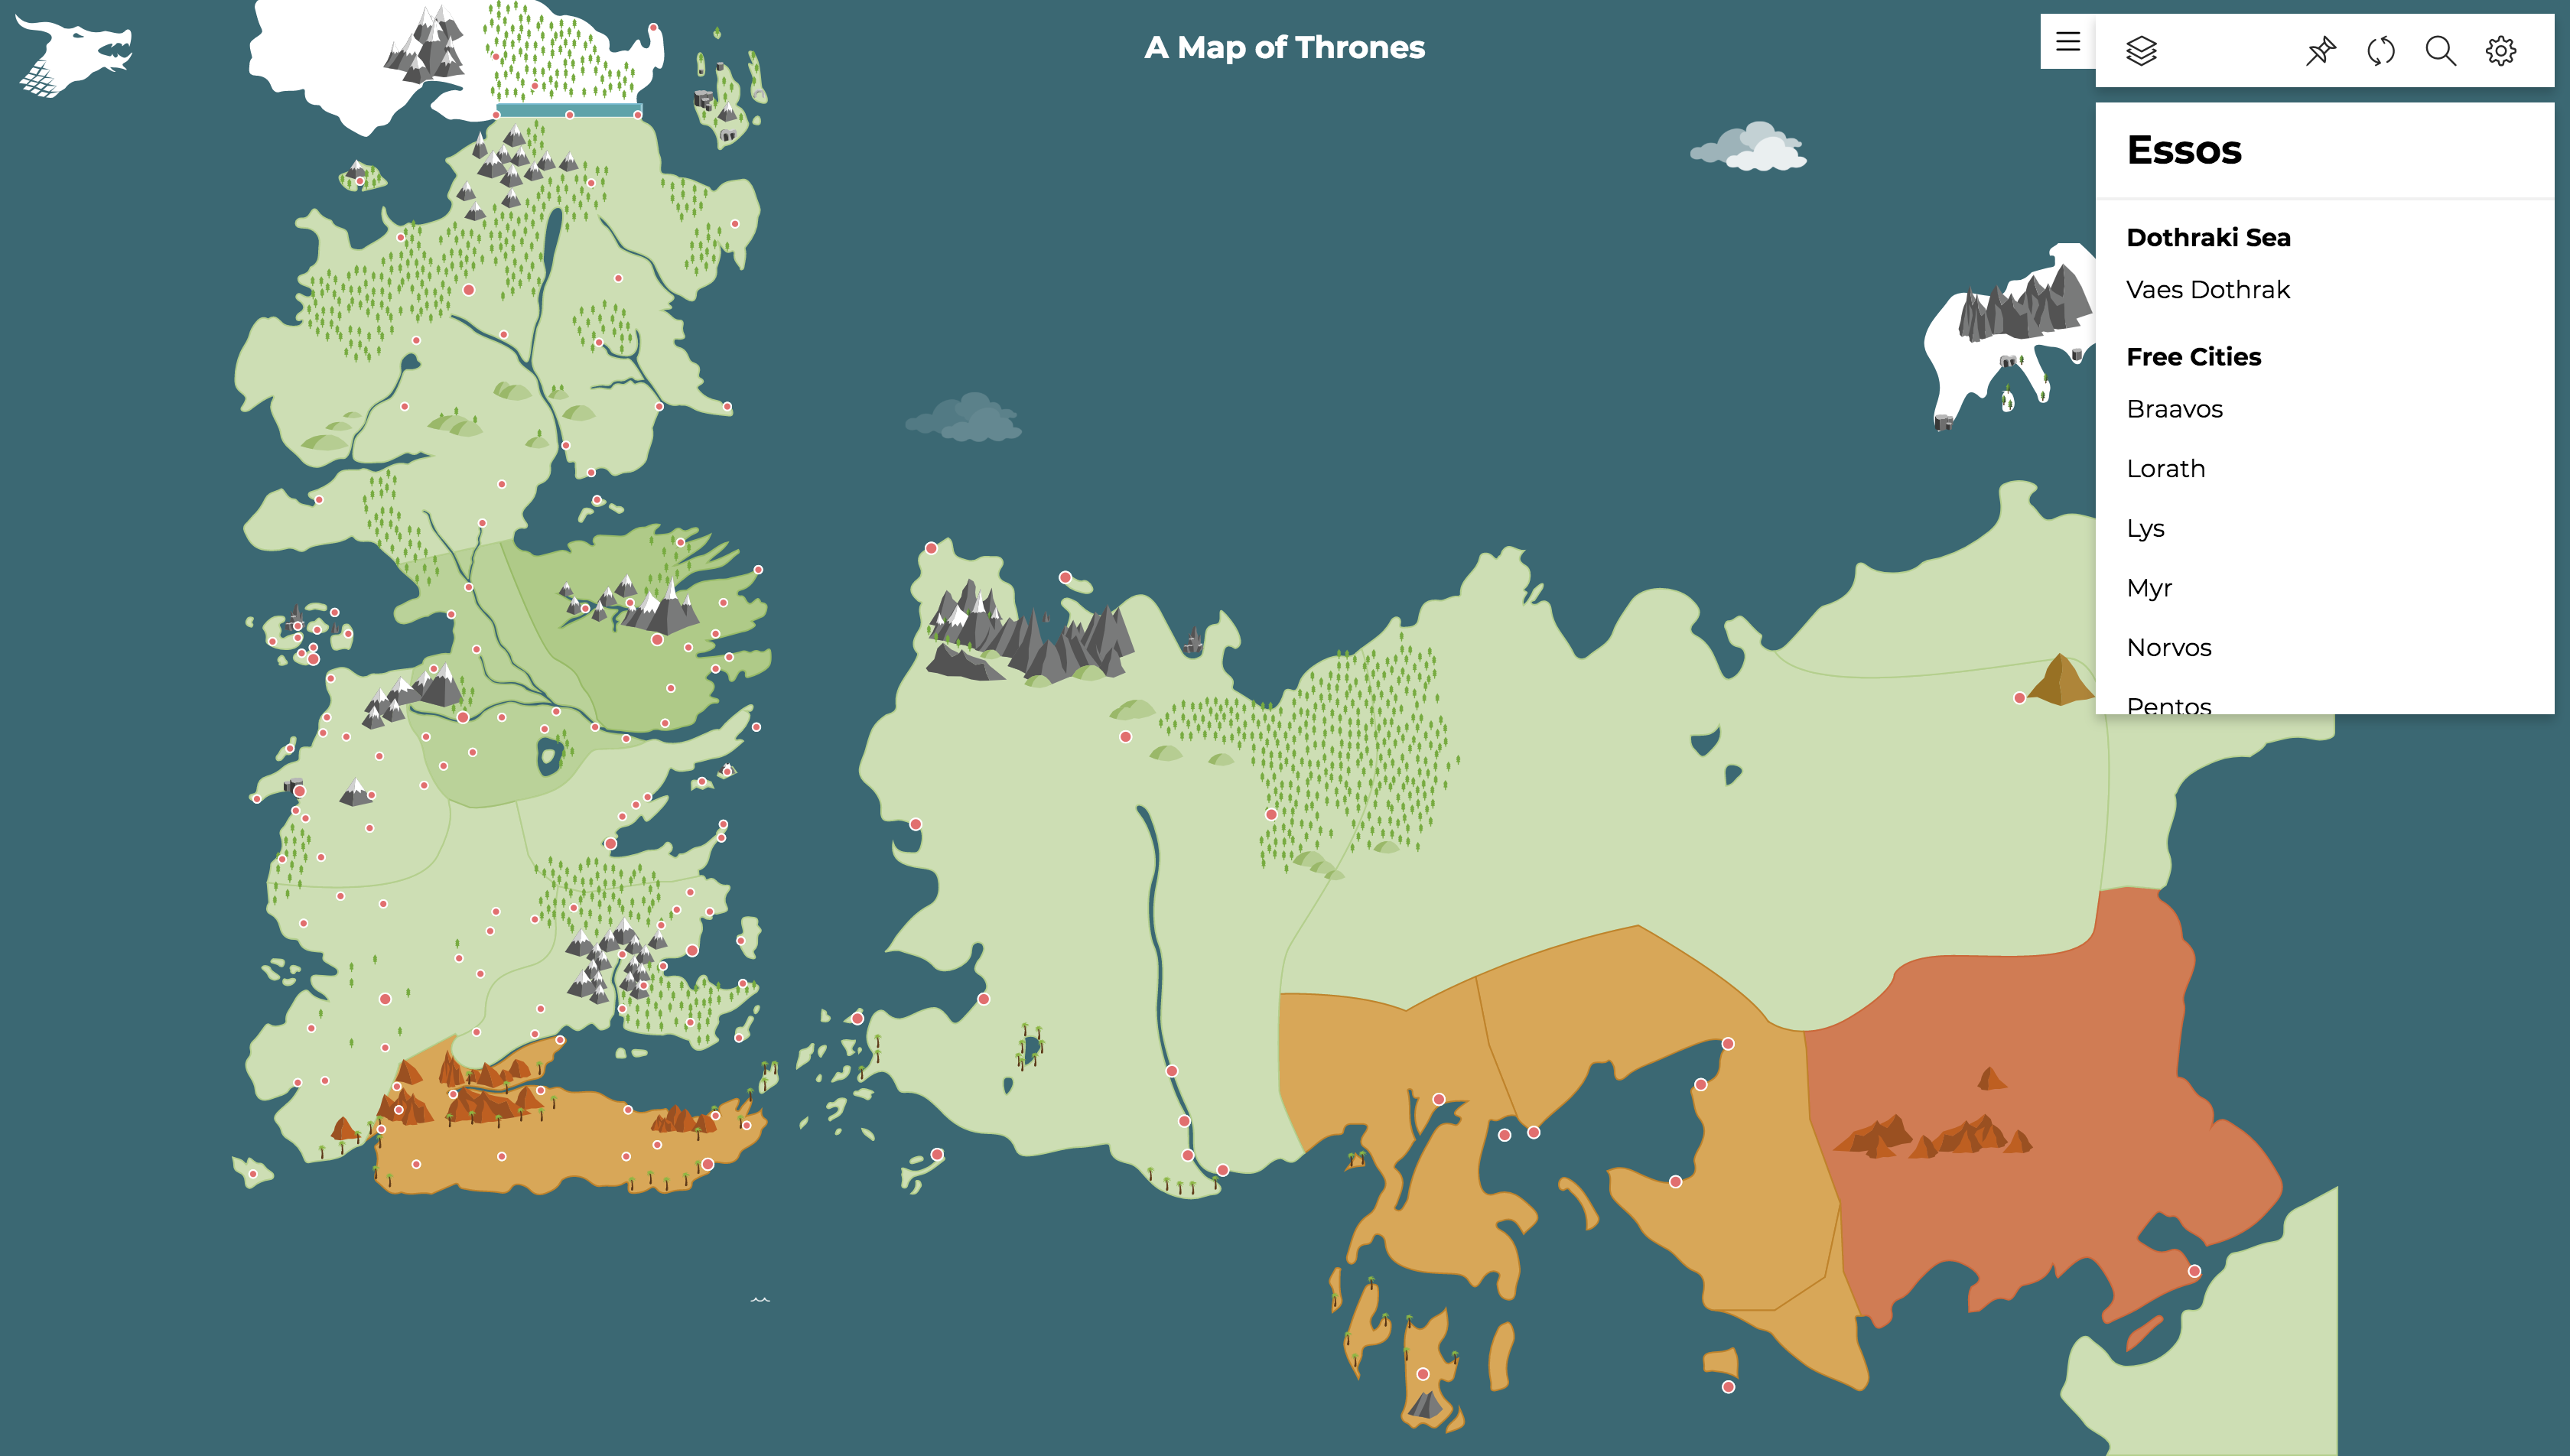 An interactive Game of Thrones map - Max Hermansson - Medium on a golden crown, a storm of swords map, justified map, game of thrones - season 2, jericho map, gendry map, dallas map, a storm of swords, qarth map, the kingsroad, a game of thrones, got map, spooksville map, guild wars 2 map, bloodline map, the pointy end, lord snow, game of thrones - season 1, works based on a song of ice and fire, winter is coming, tales of dunk and egg, clash of kings map, star trek map, winterfell map, a clash of kings, jersey shore map, downton abbey map, a game of thrones: genesis, walking dead map, sons of anarchy, themes in a song of ice and fire, fire and blood, camelot map, world map, a game of thrones collectible card game, the prince of winterfell, valyria map, narnia map,